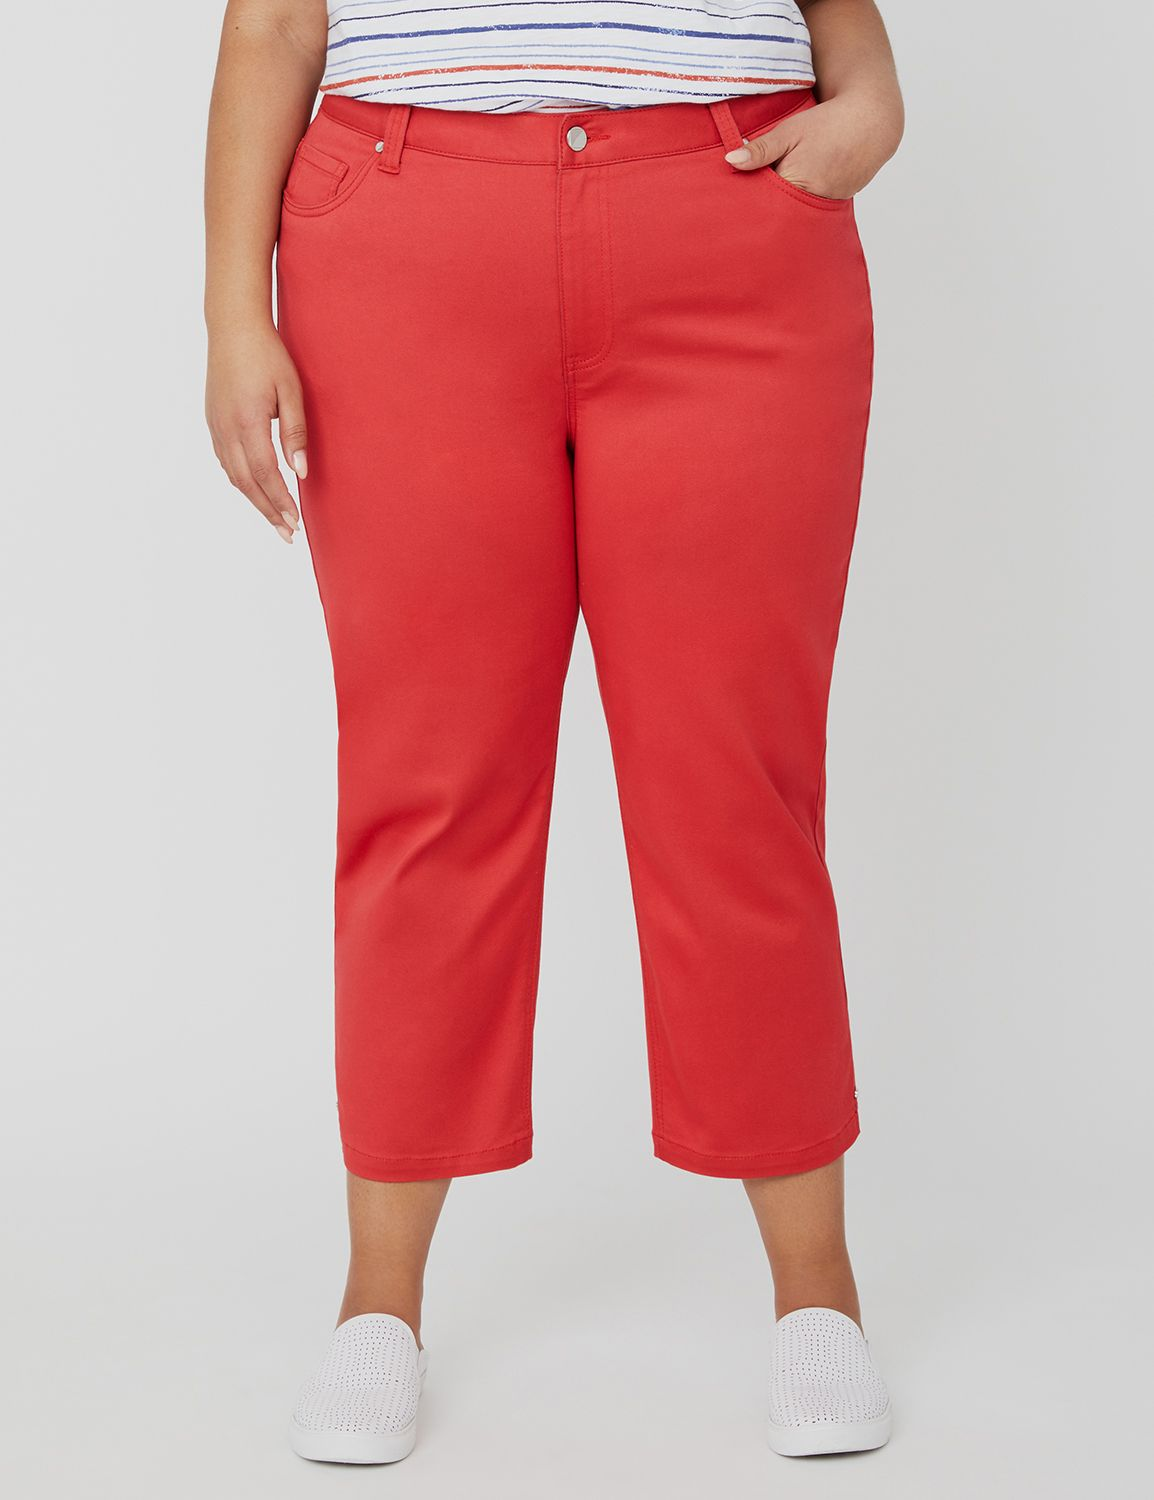 Sateen Stretch Capri 1091166 SATEEN CAPRI - 21